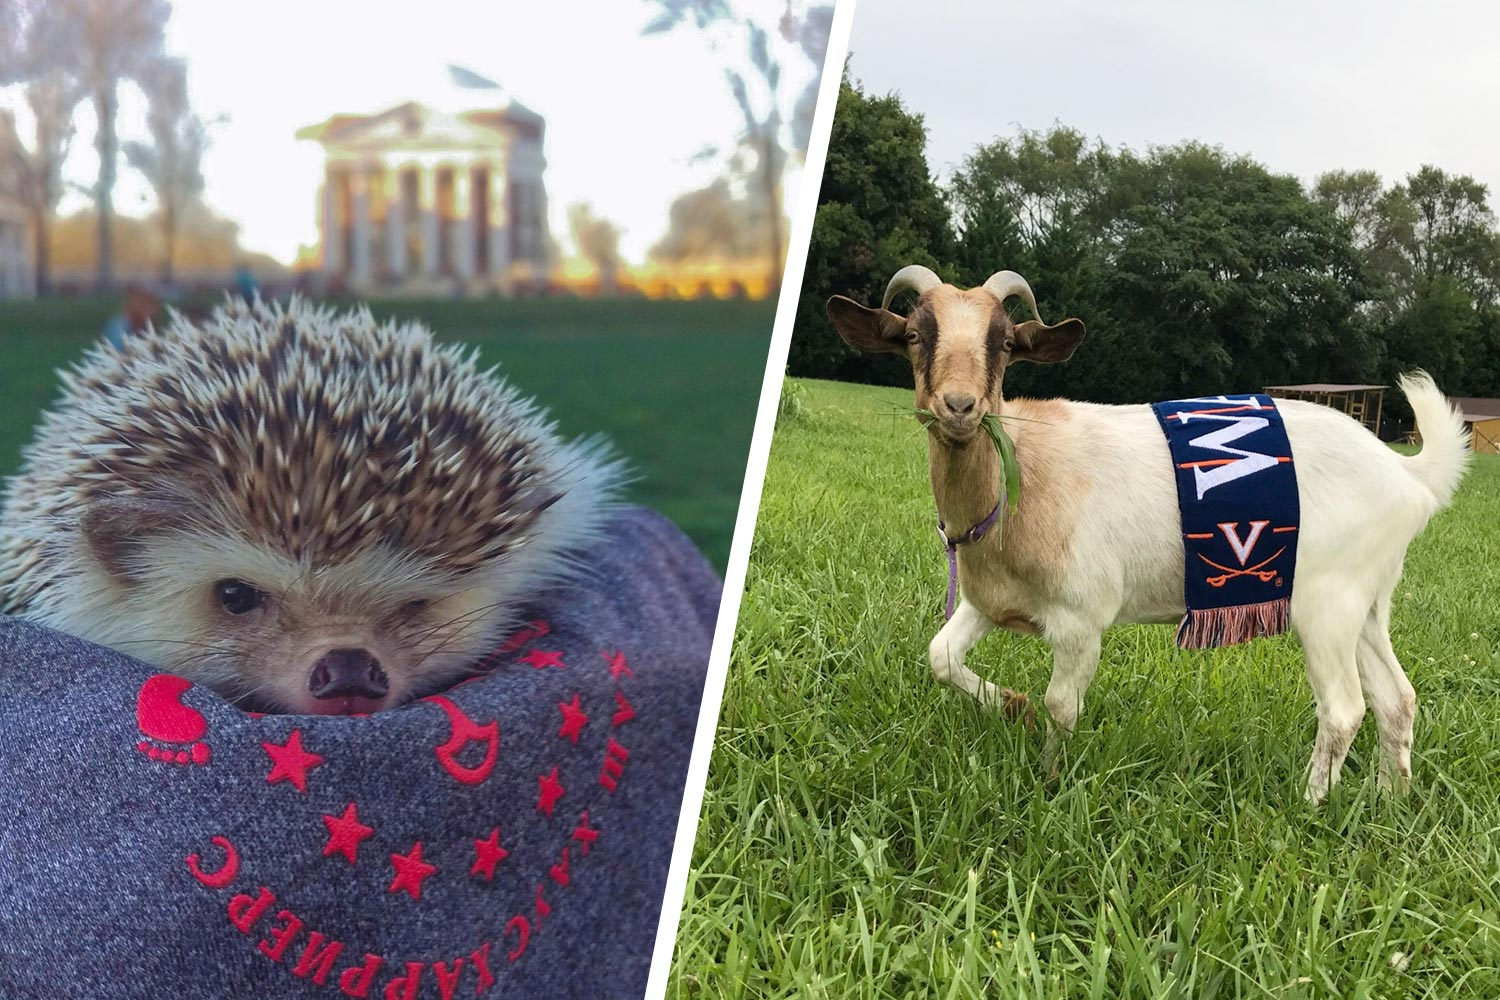 Opal the goat and Bill the hedgehog pose for photos.